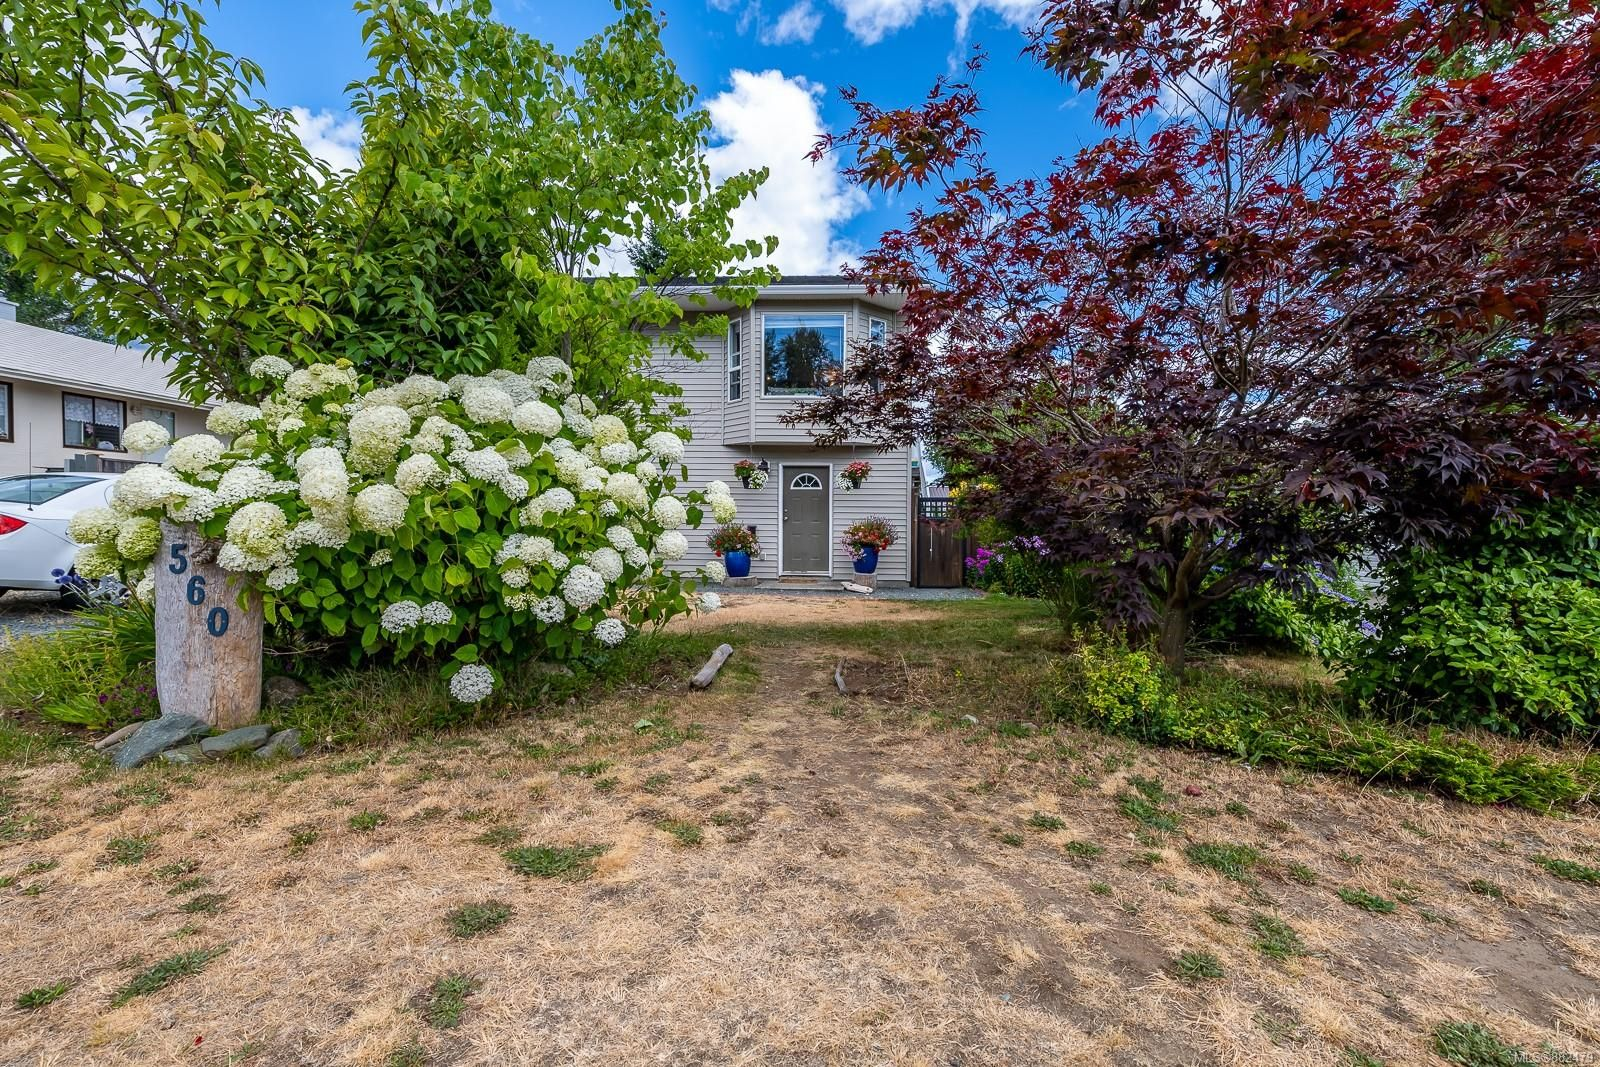 Main Photo: 560 6th Ave in : CR Campbell River Central House for sale (Campbell River)  : MLS®# 882479